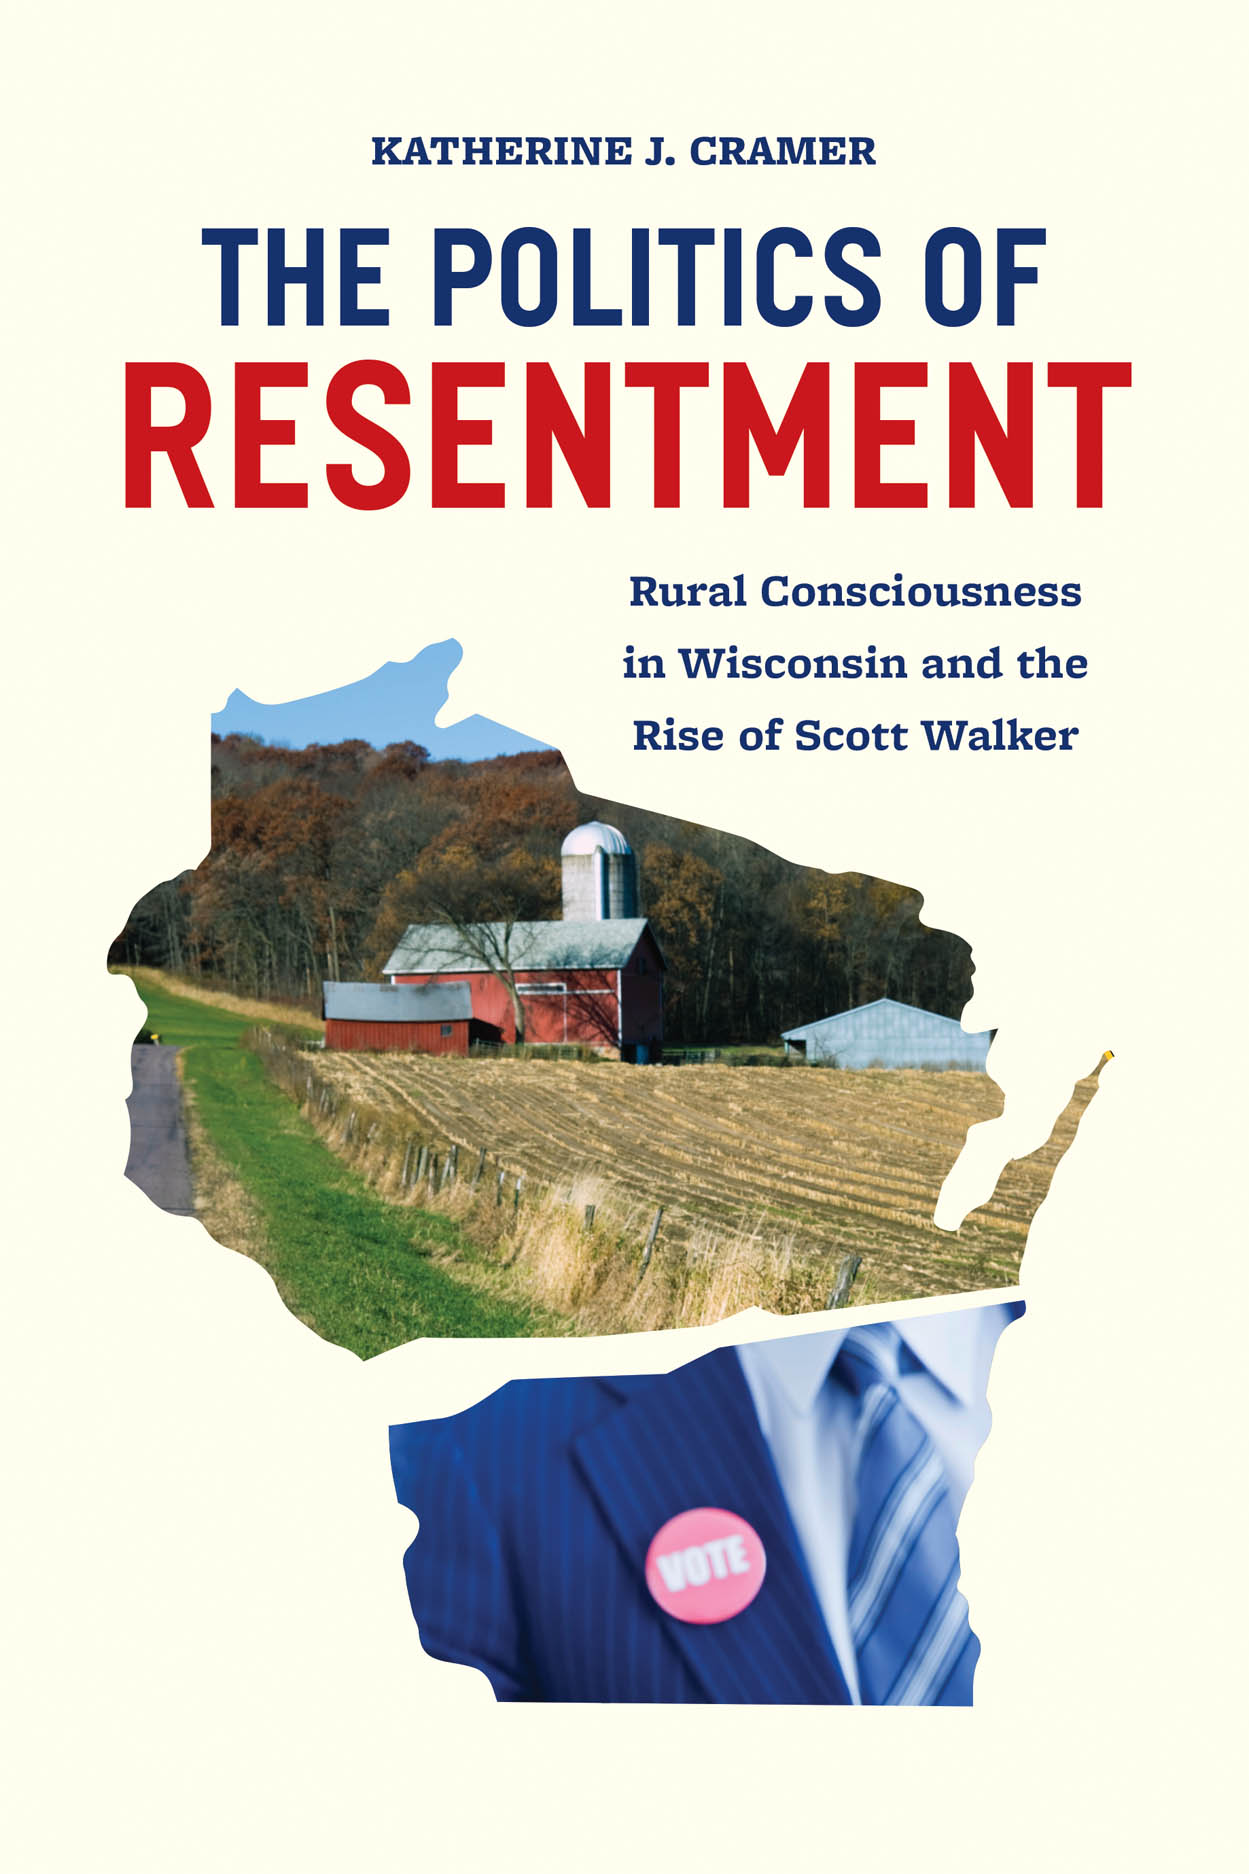 The Politics of Resentment: Rural Consciousness in Wisconsin and the Rise of Scott Walker